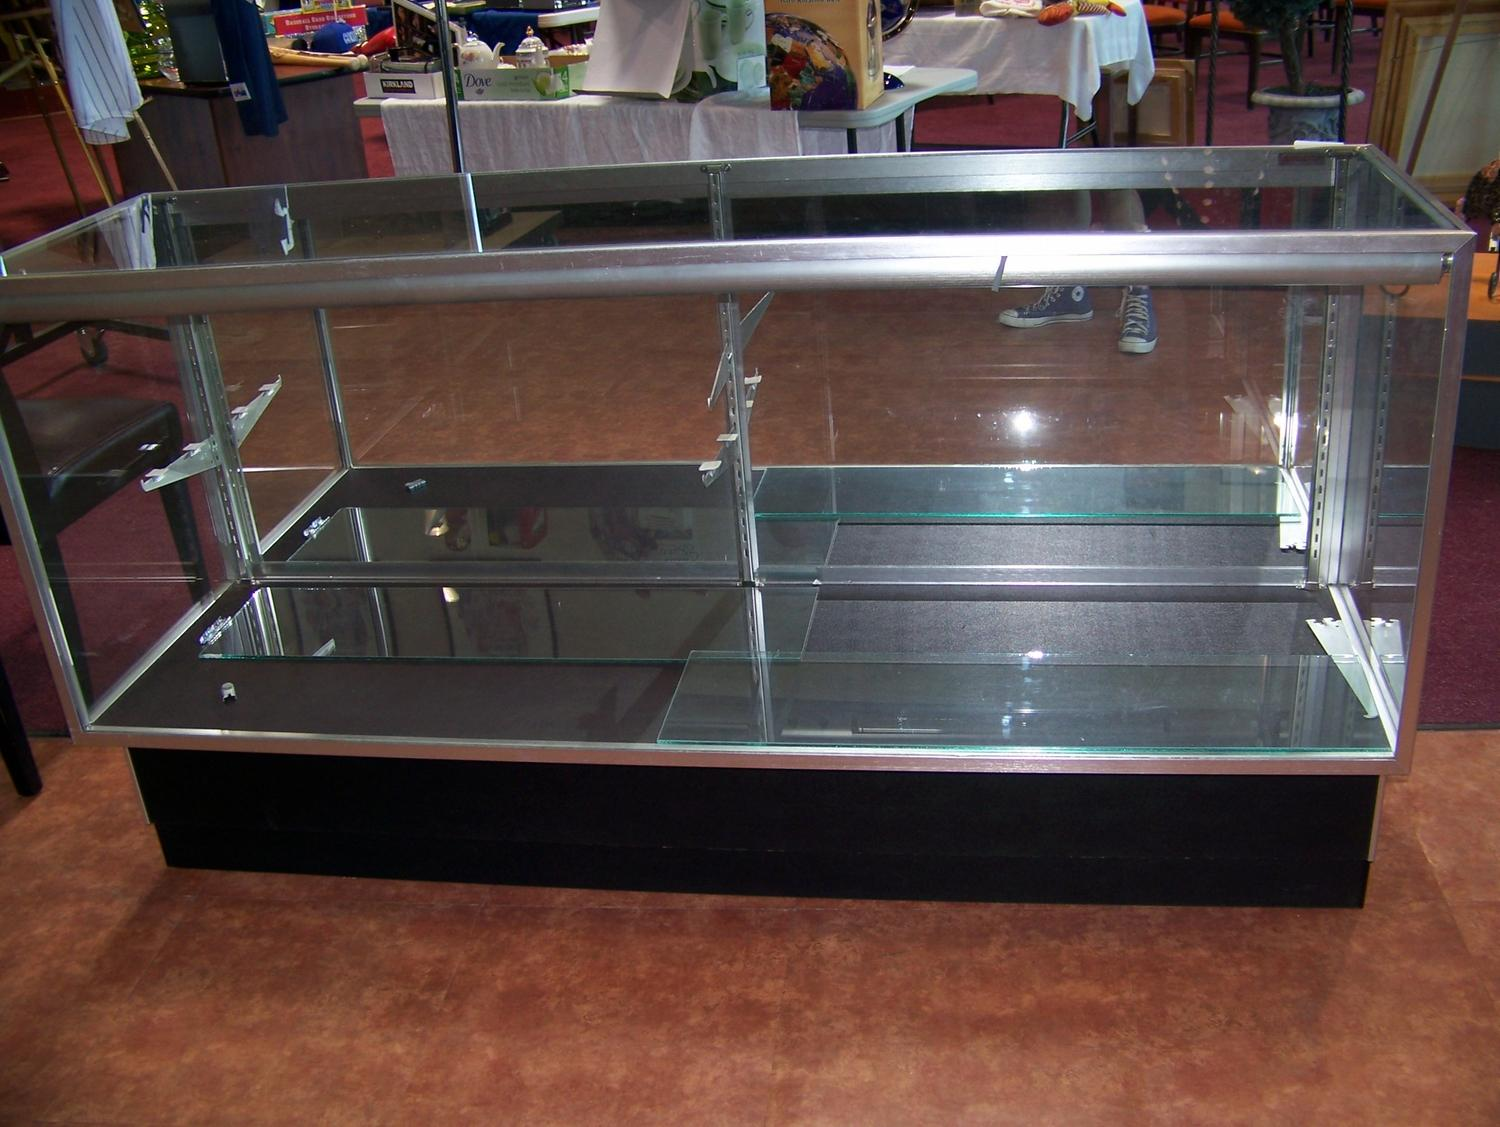 retail glass display case large. Black Bedroom Furniture Sets. Home Design Ideas